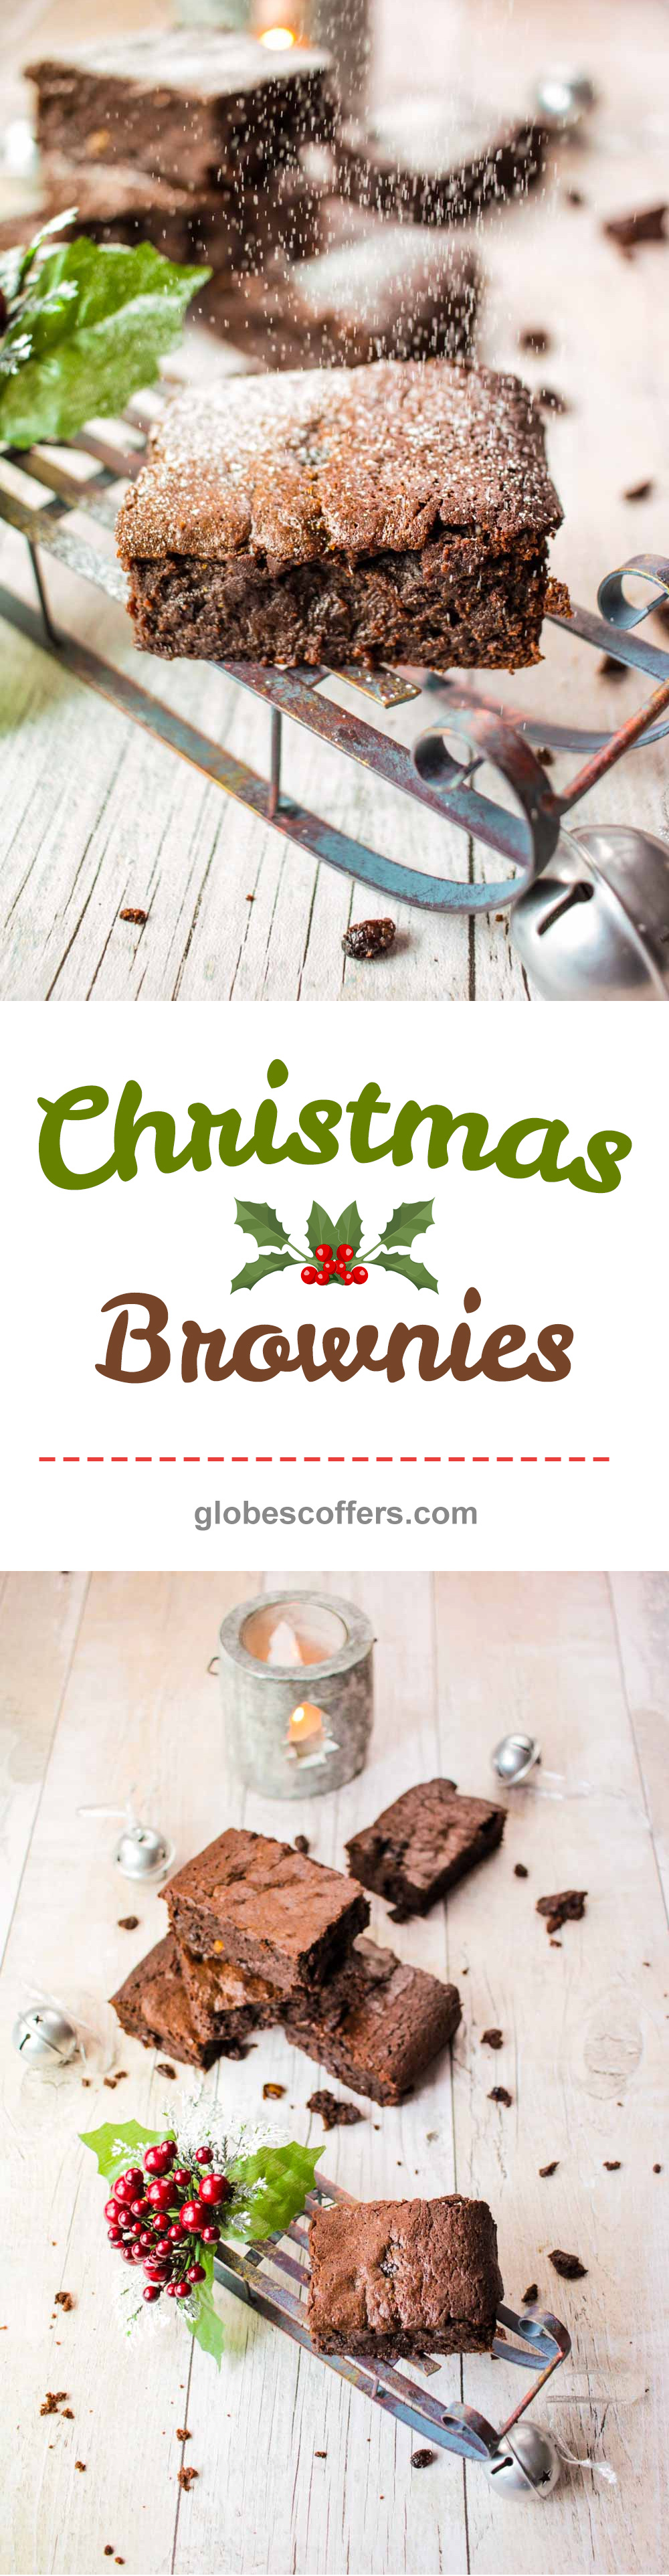 Christmas Brownies Recipe Pinterest